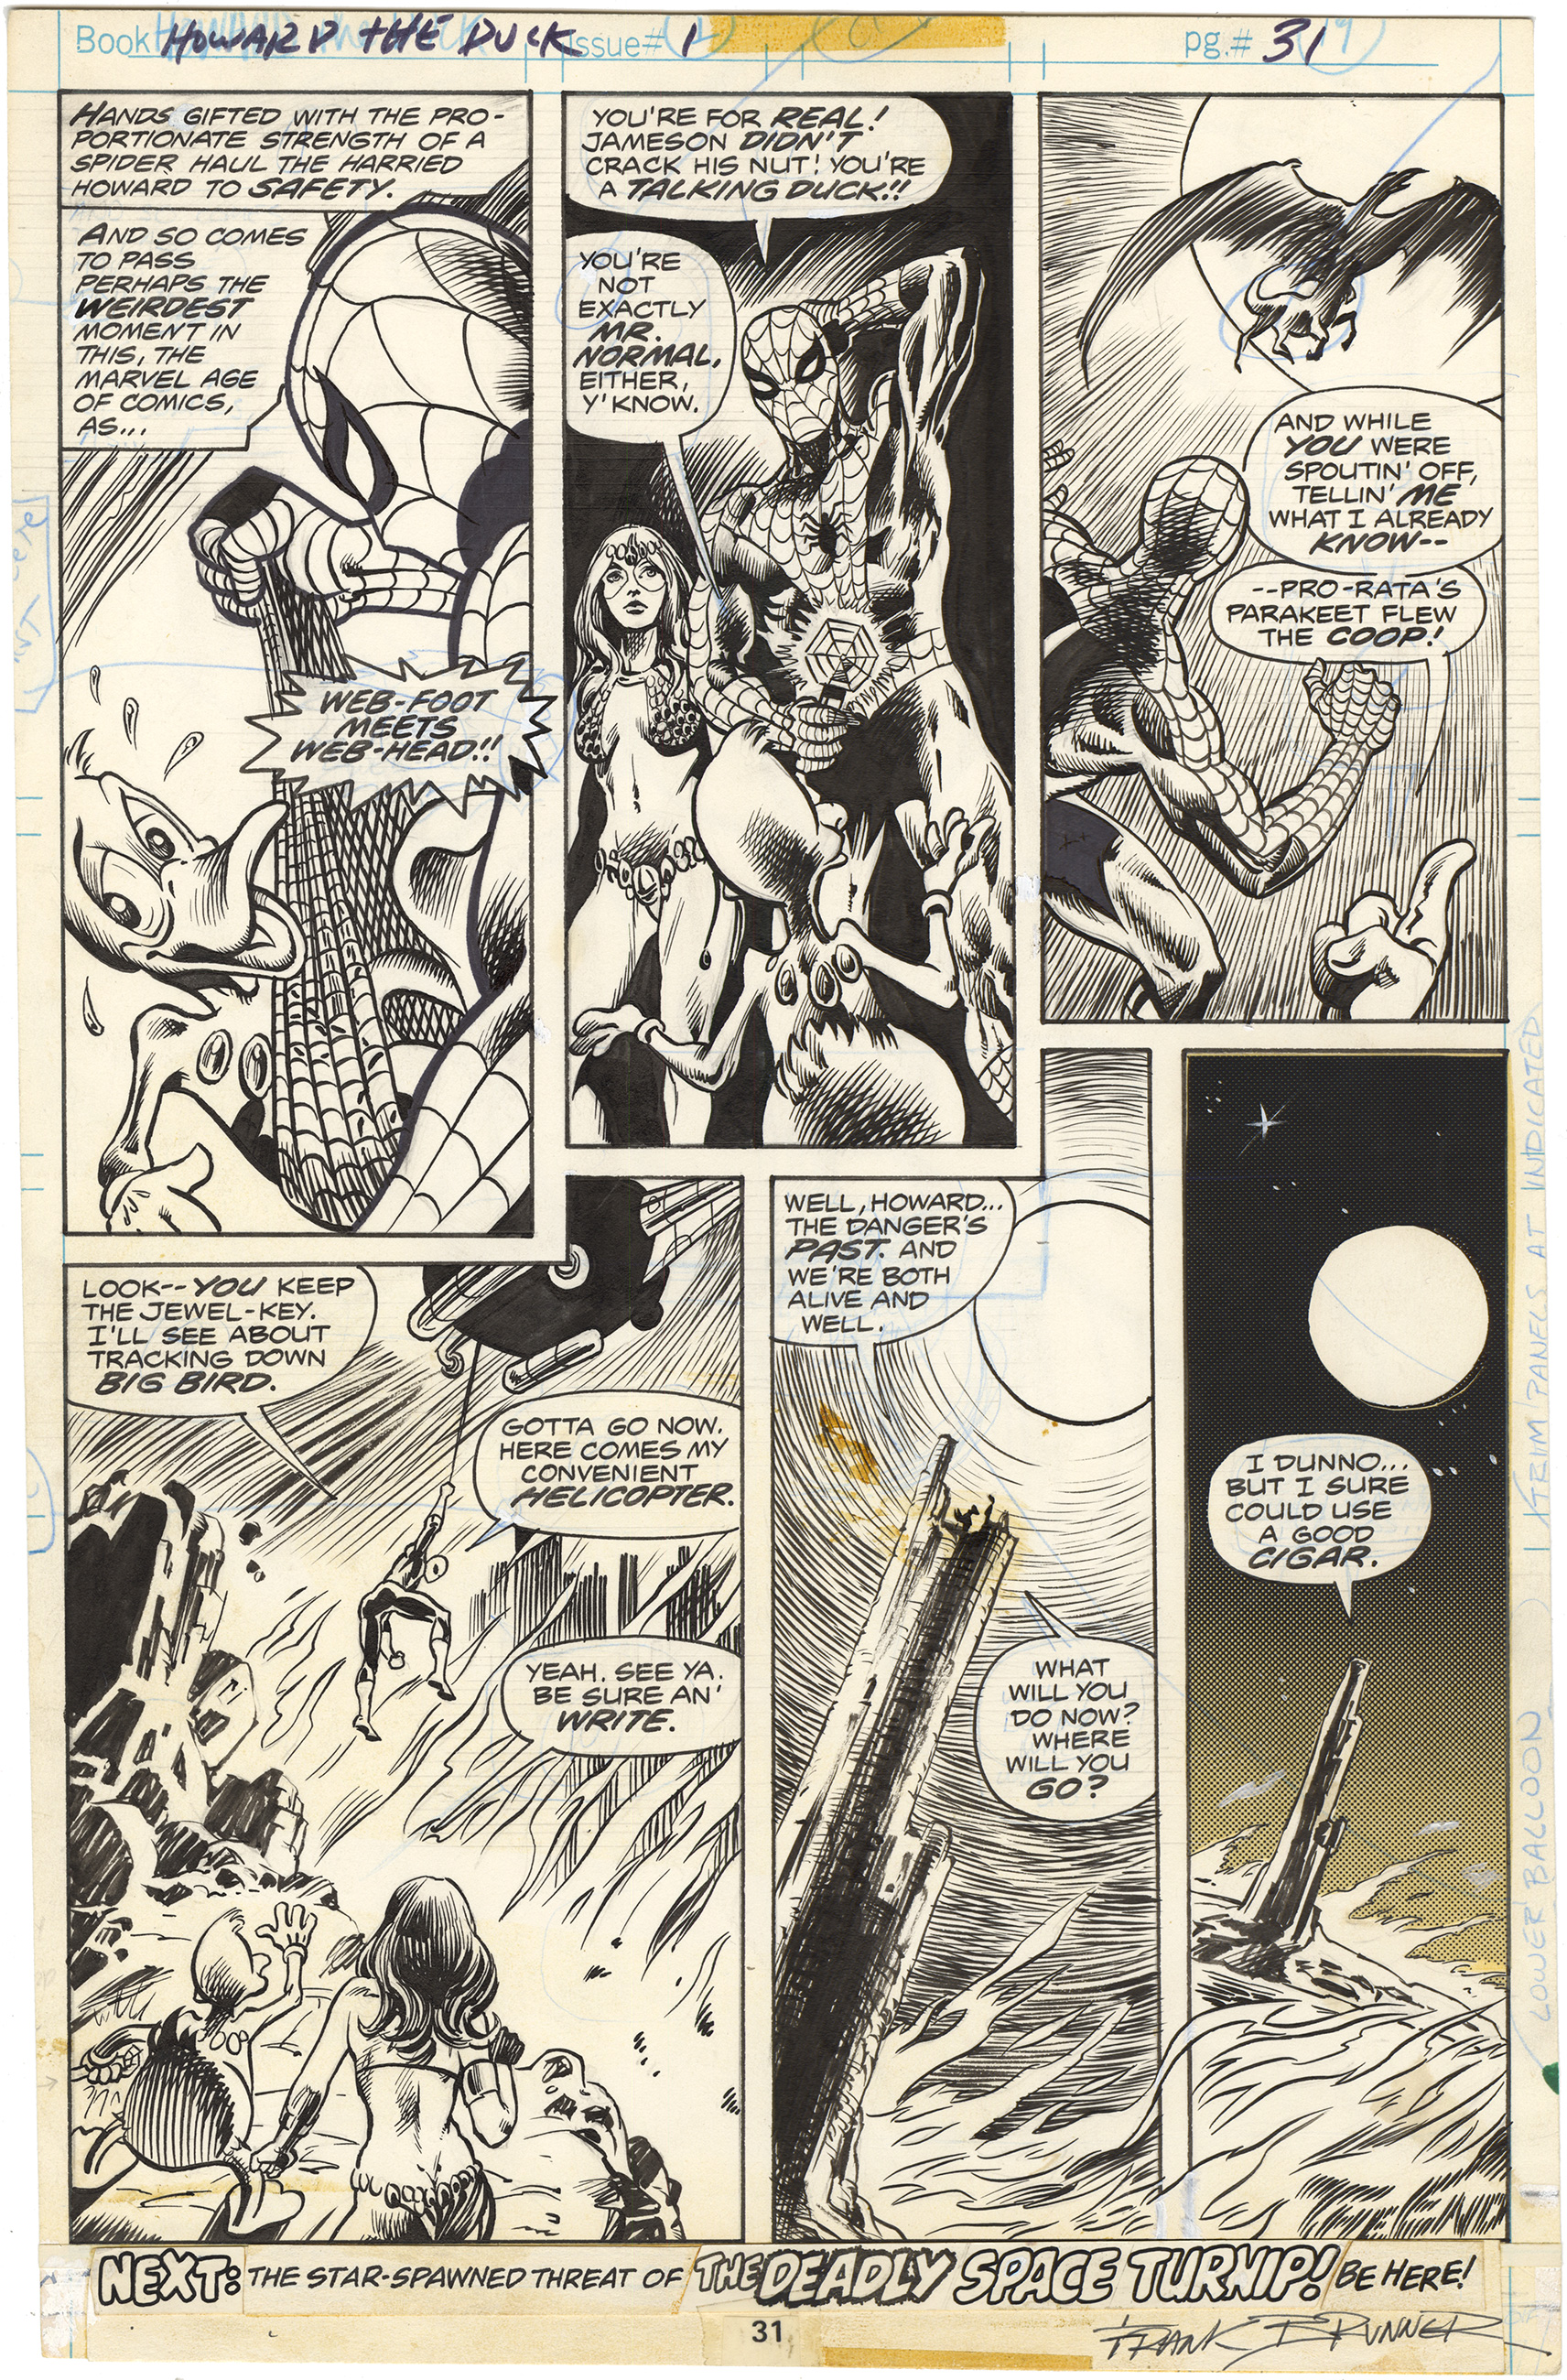 Howard The Duck #1 p31 (Signed)